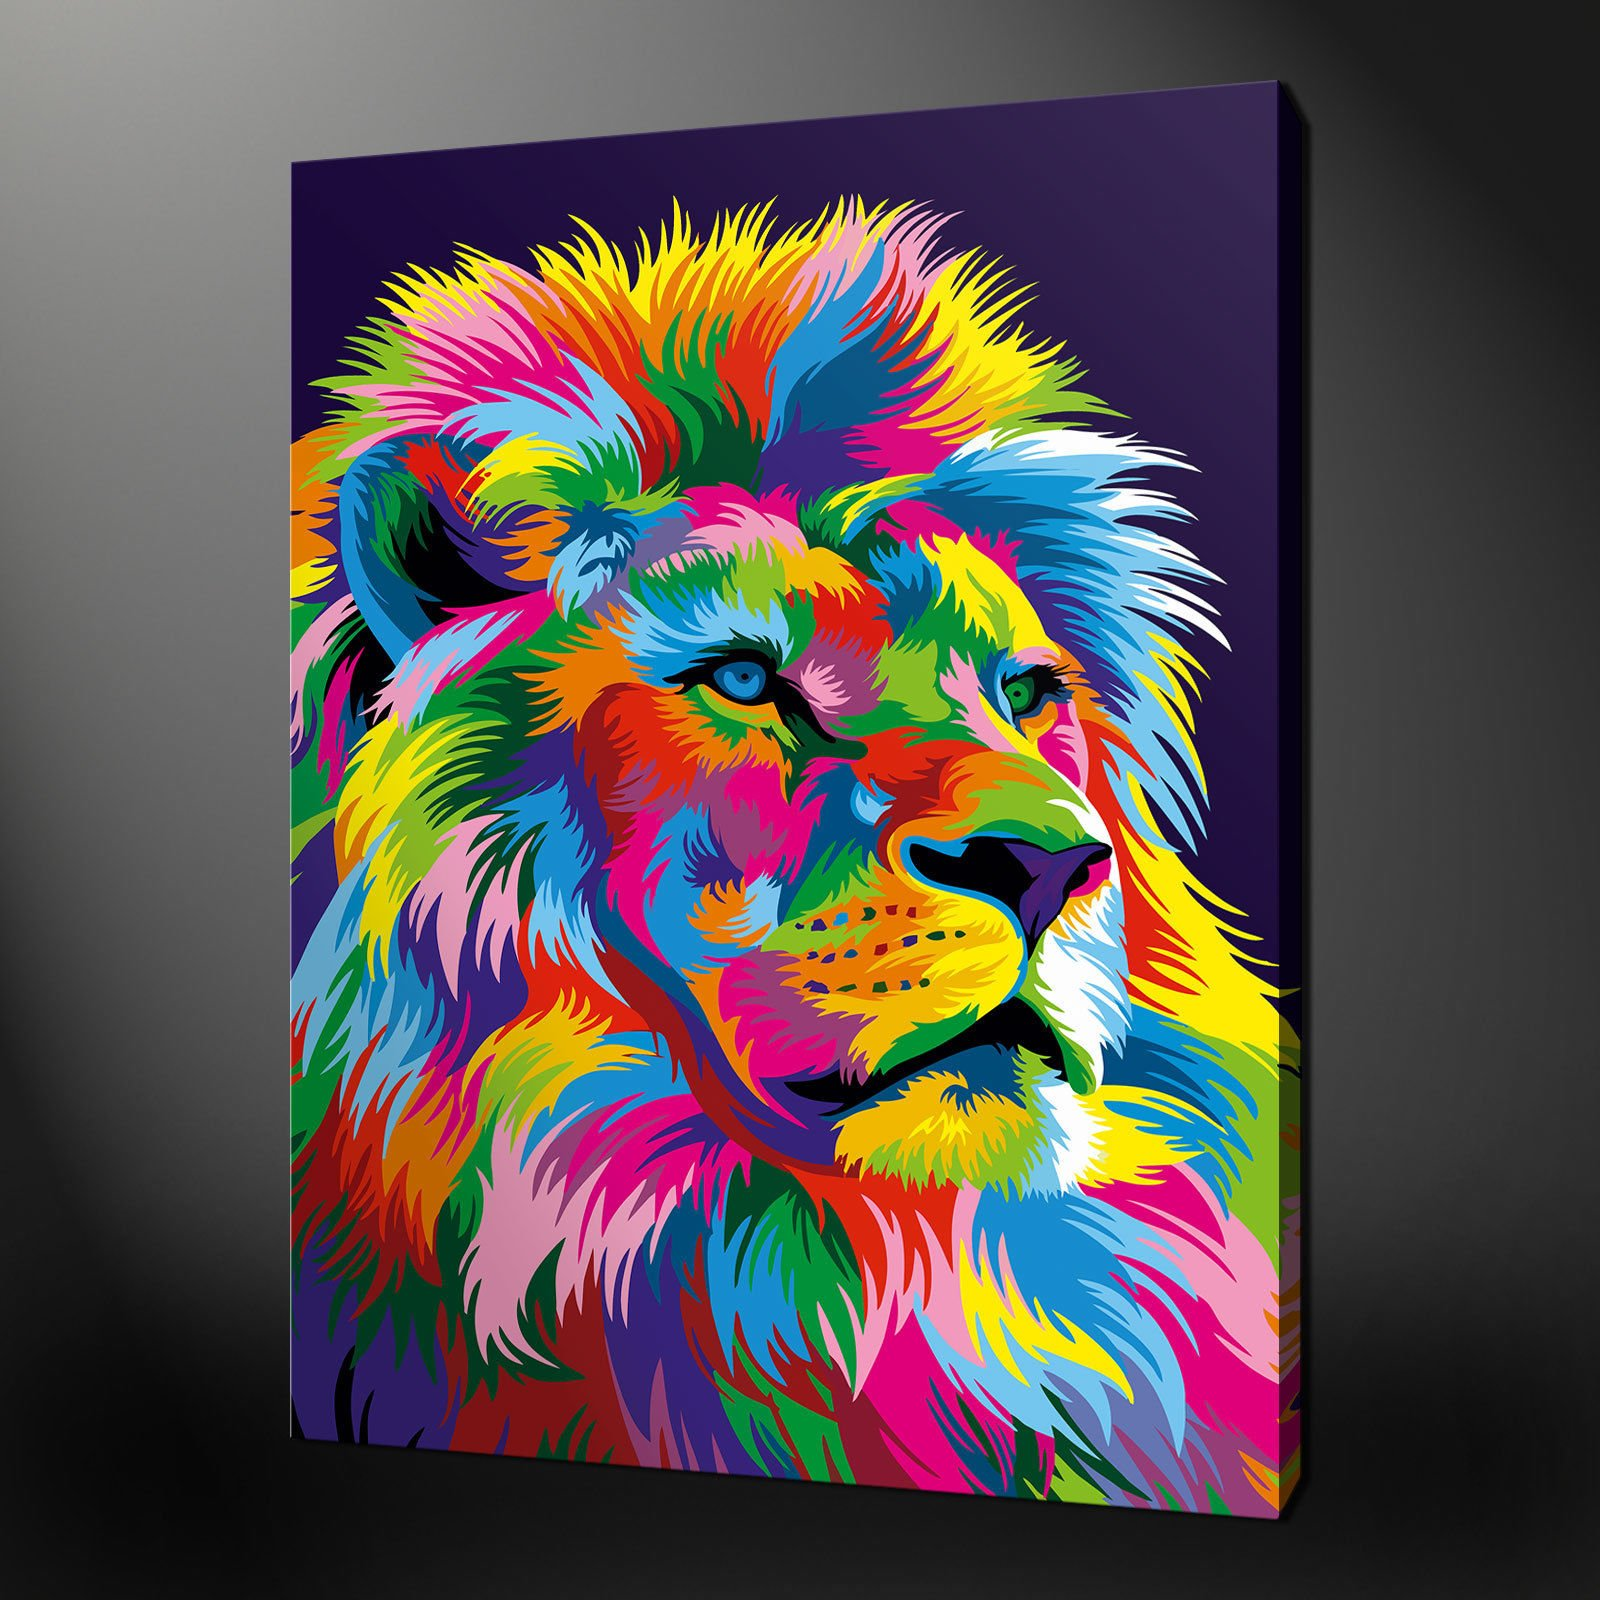 Variety Of Designs For A Spectacular: Canvas Print Pictures. High Quality, Handmade, Free Next